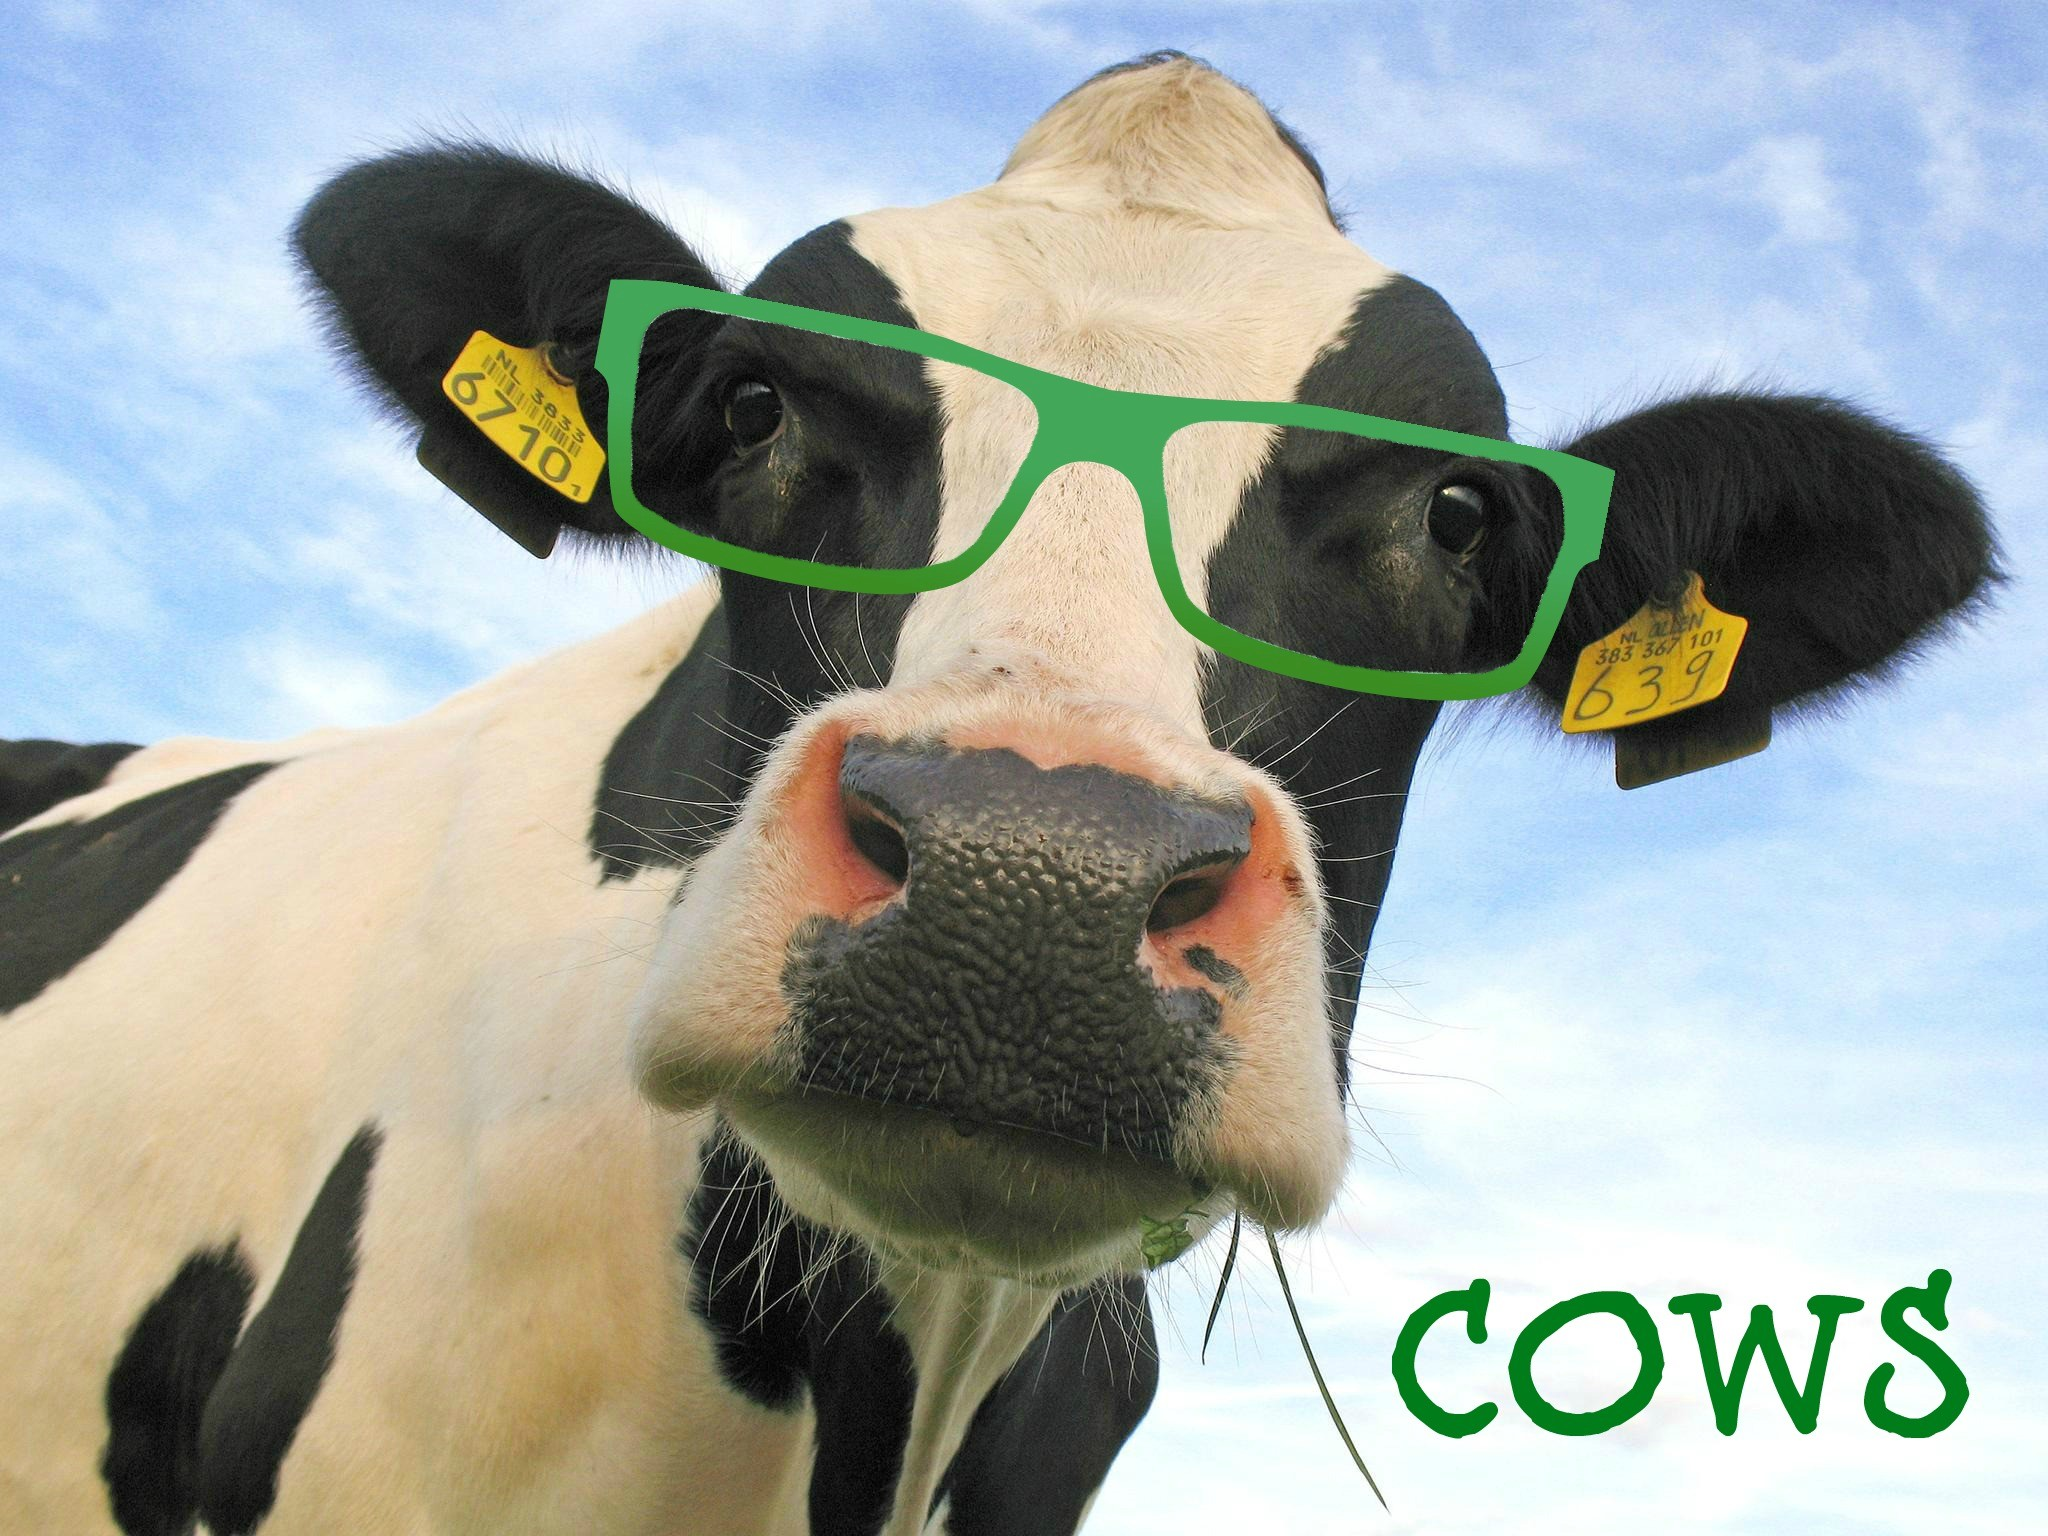 Funny Cow Wallpaper (54+ images)